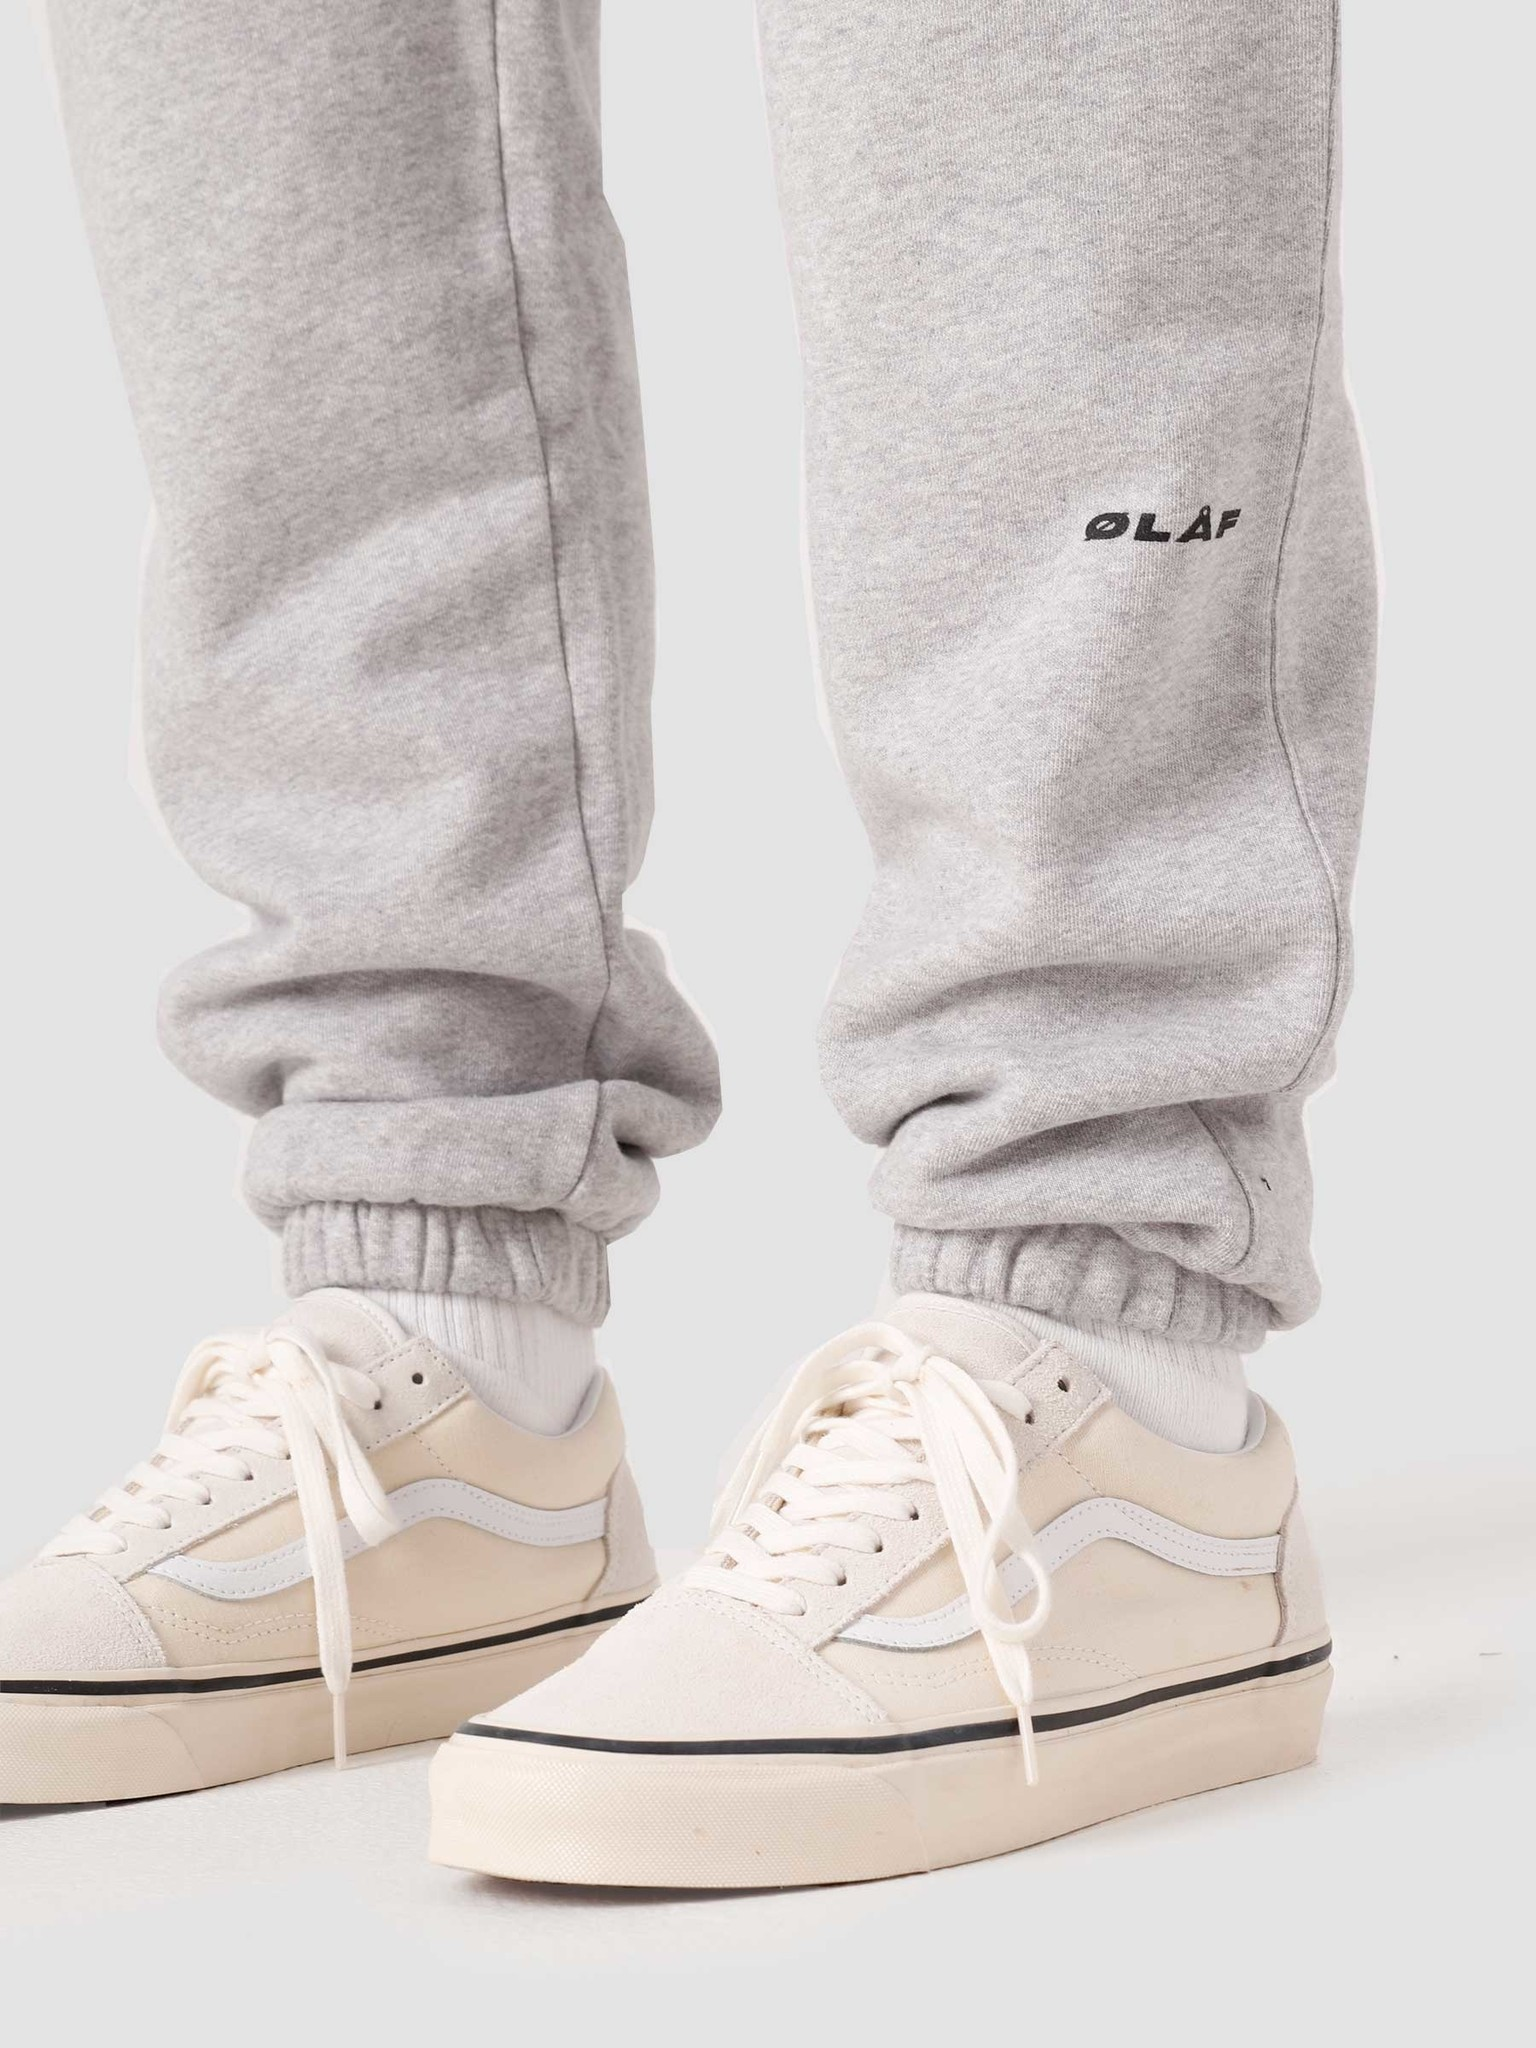 Olaf Hussein Olaf Hussein OLAF Sweatpant Heather Grey